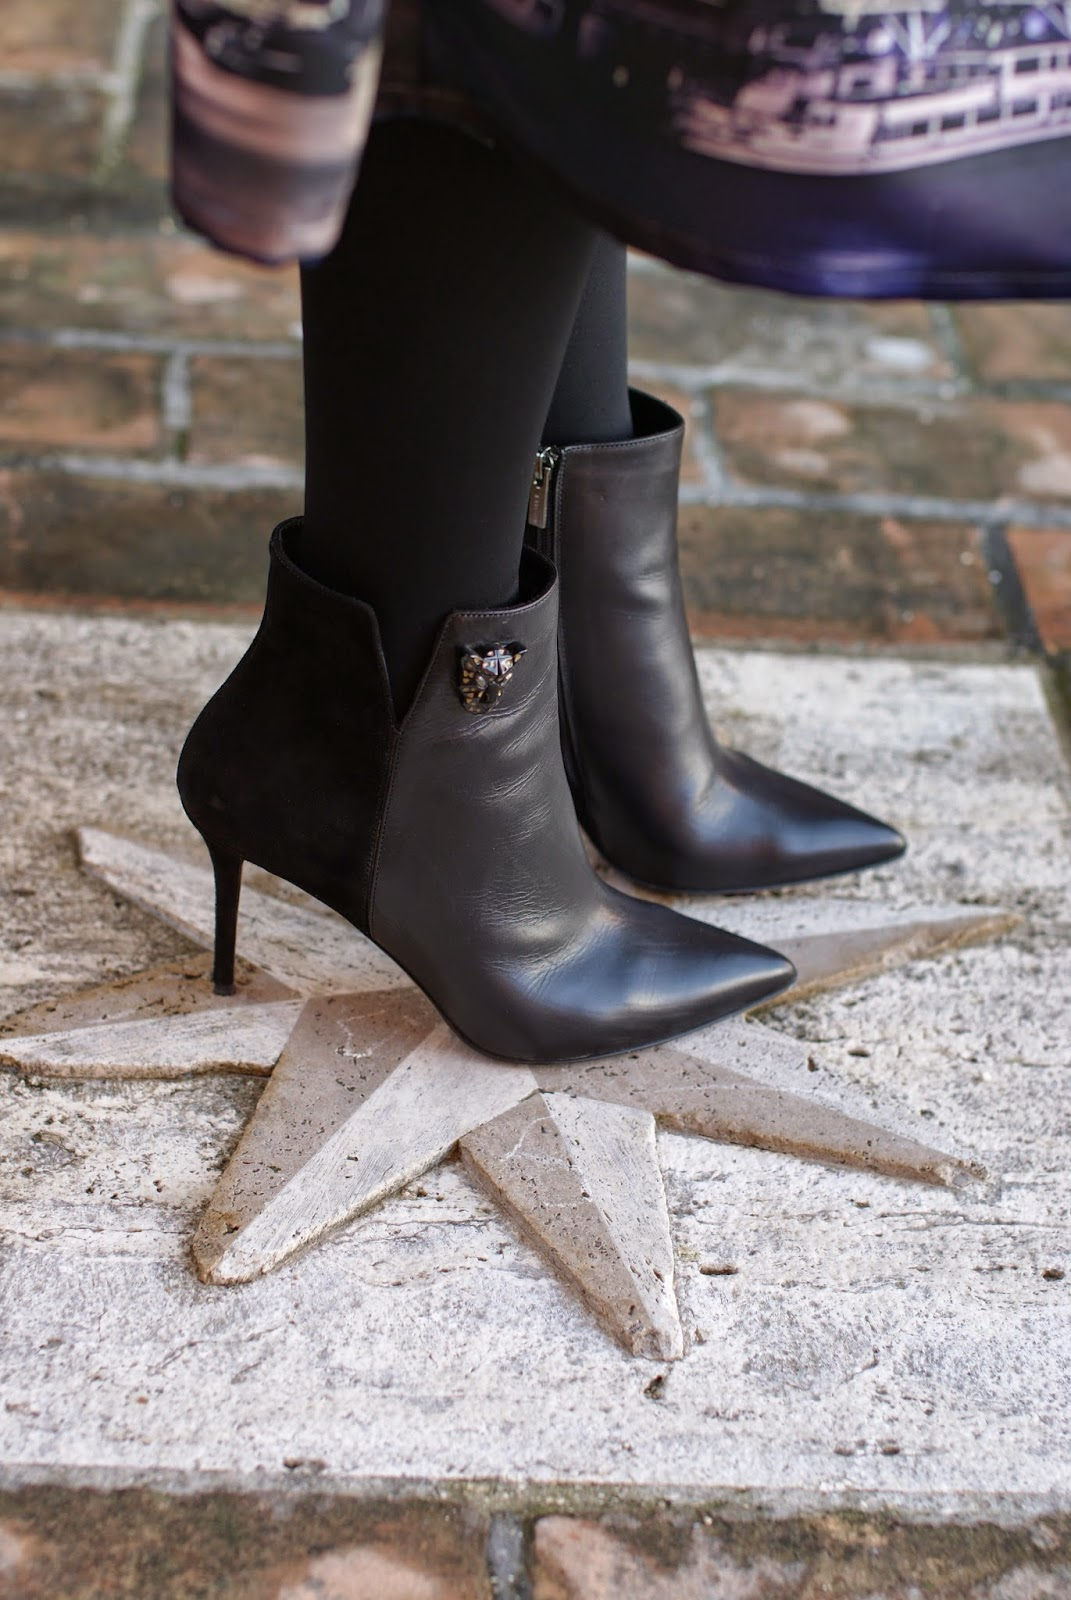 Le Silla ankle boots, Le Silla new collection Fall Winter 2014 2015, Fashion and Cookies, fashion blogger